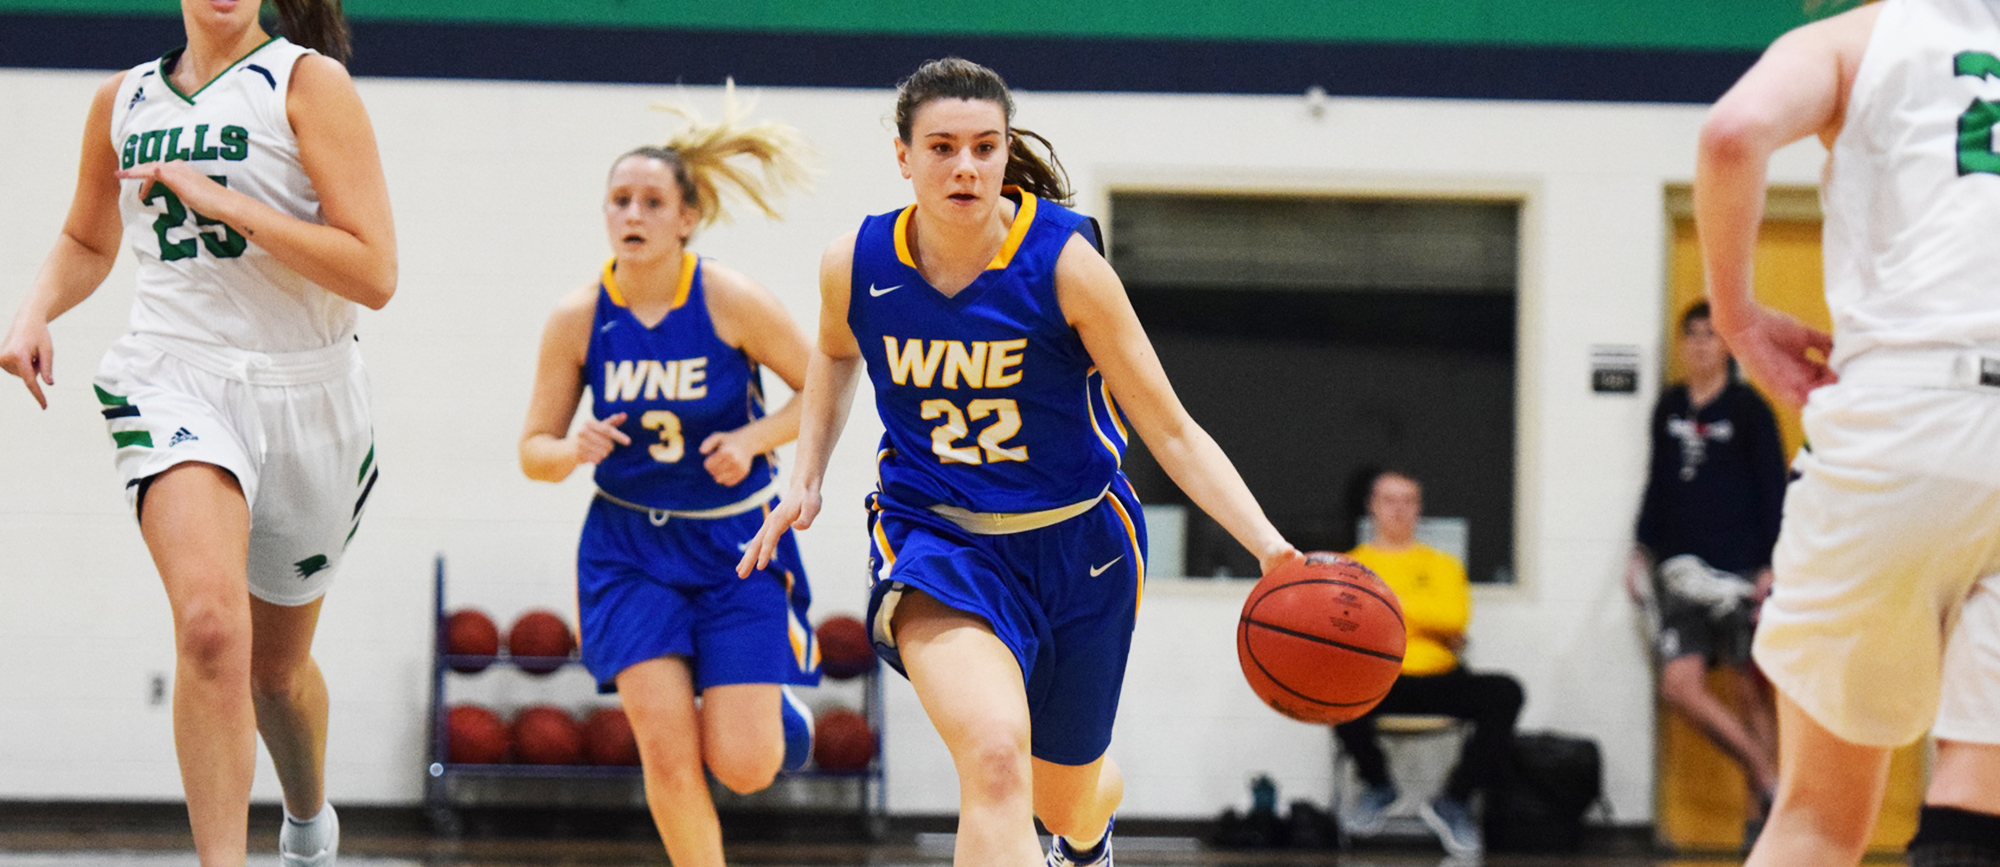 Emily Farrell matched her career-high with 21 points while also adding 7 assists, 6 rebounds and 2 steals in a 67-57 win over Eastern Connecticut on Thursday. (Photo by Rachael Margossian)